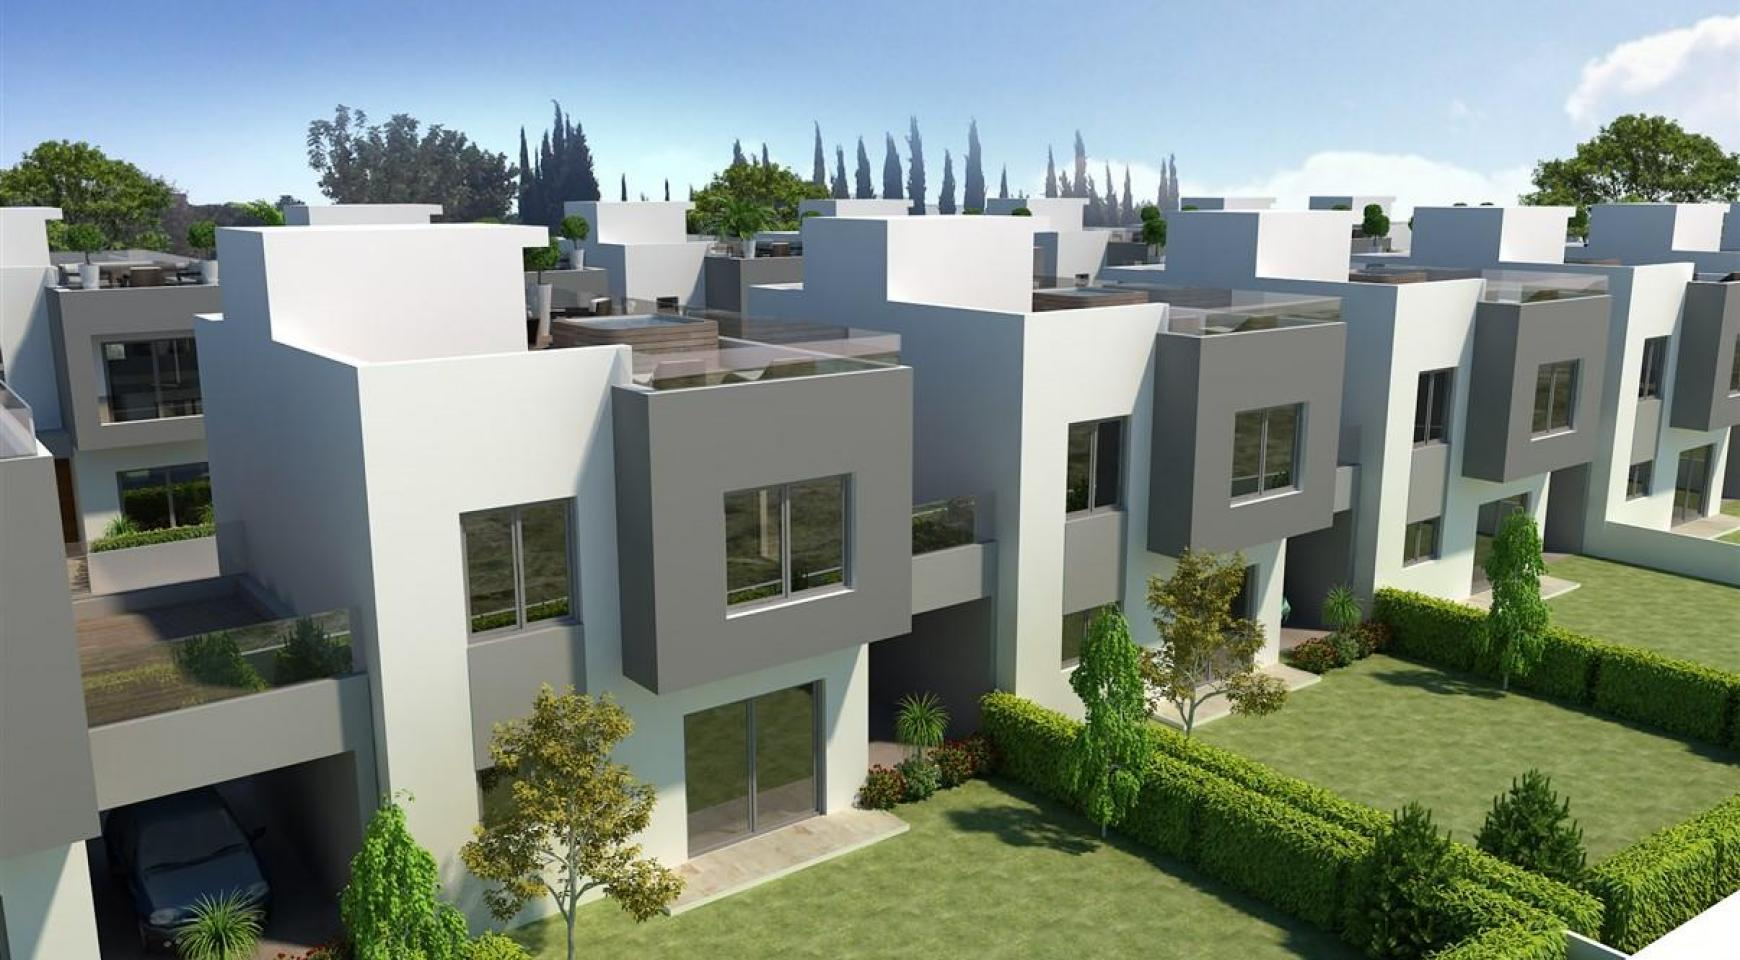 3 Bedroom Villa in a New Project - 29